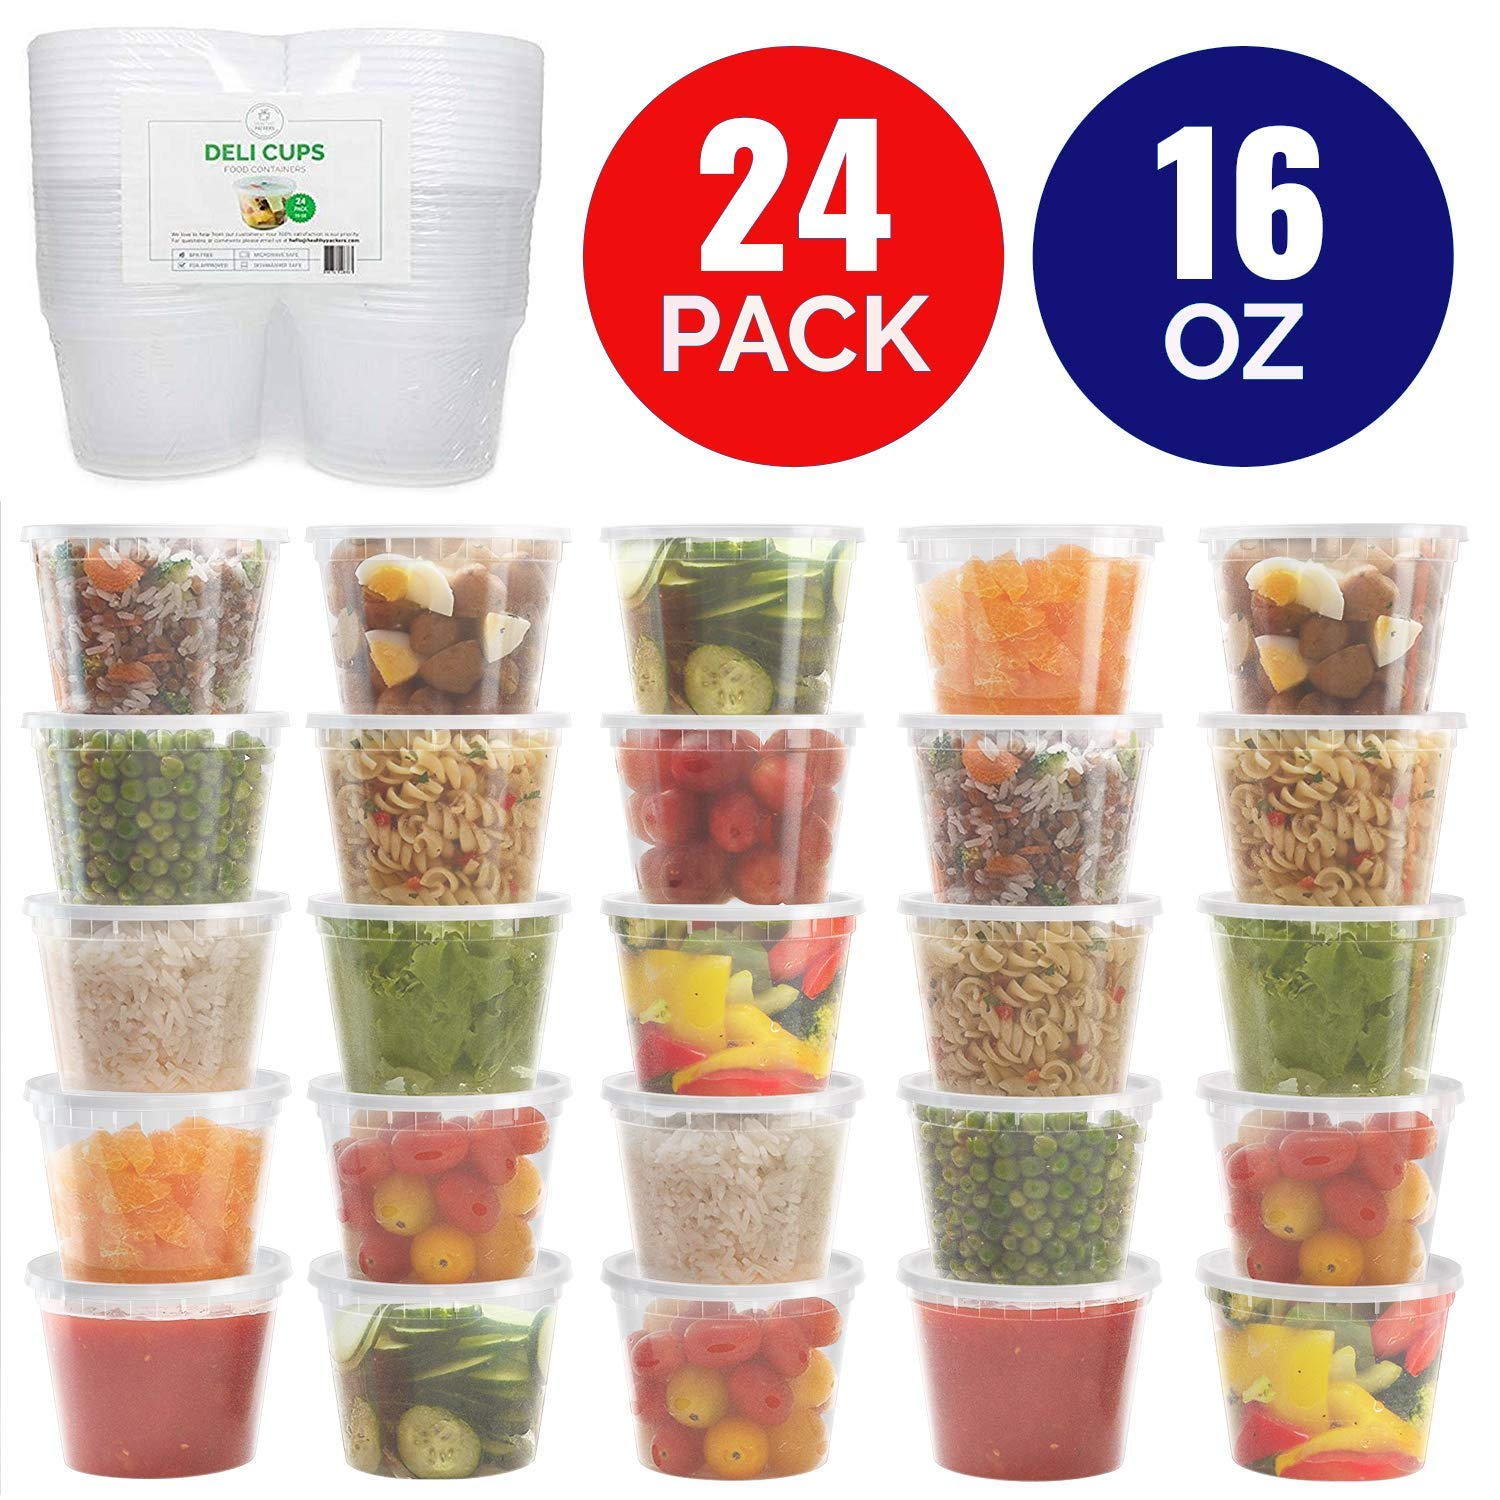 Extra Thick Food Storage Containers with Lids (16oz - 24 Pack) - Great for Slime - Deli Pint Cups - Soup Containers | Microwave, Dishwasher and Freezer Safe